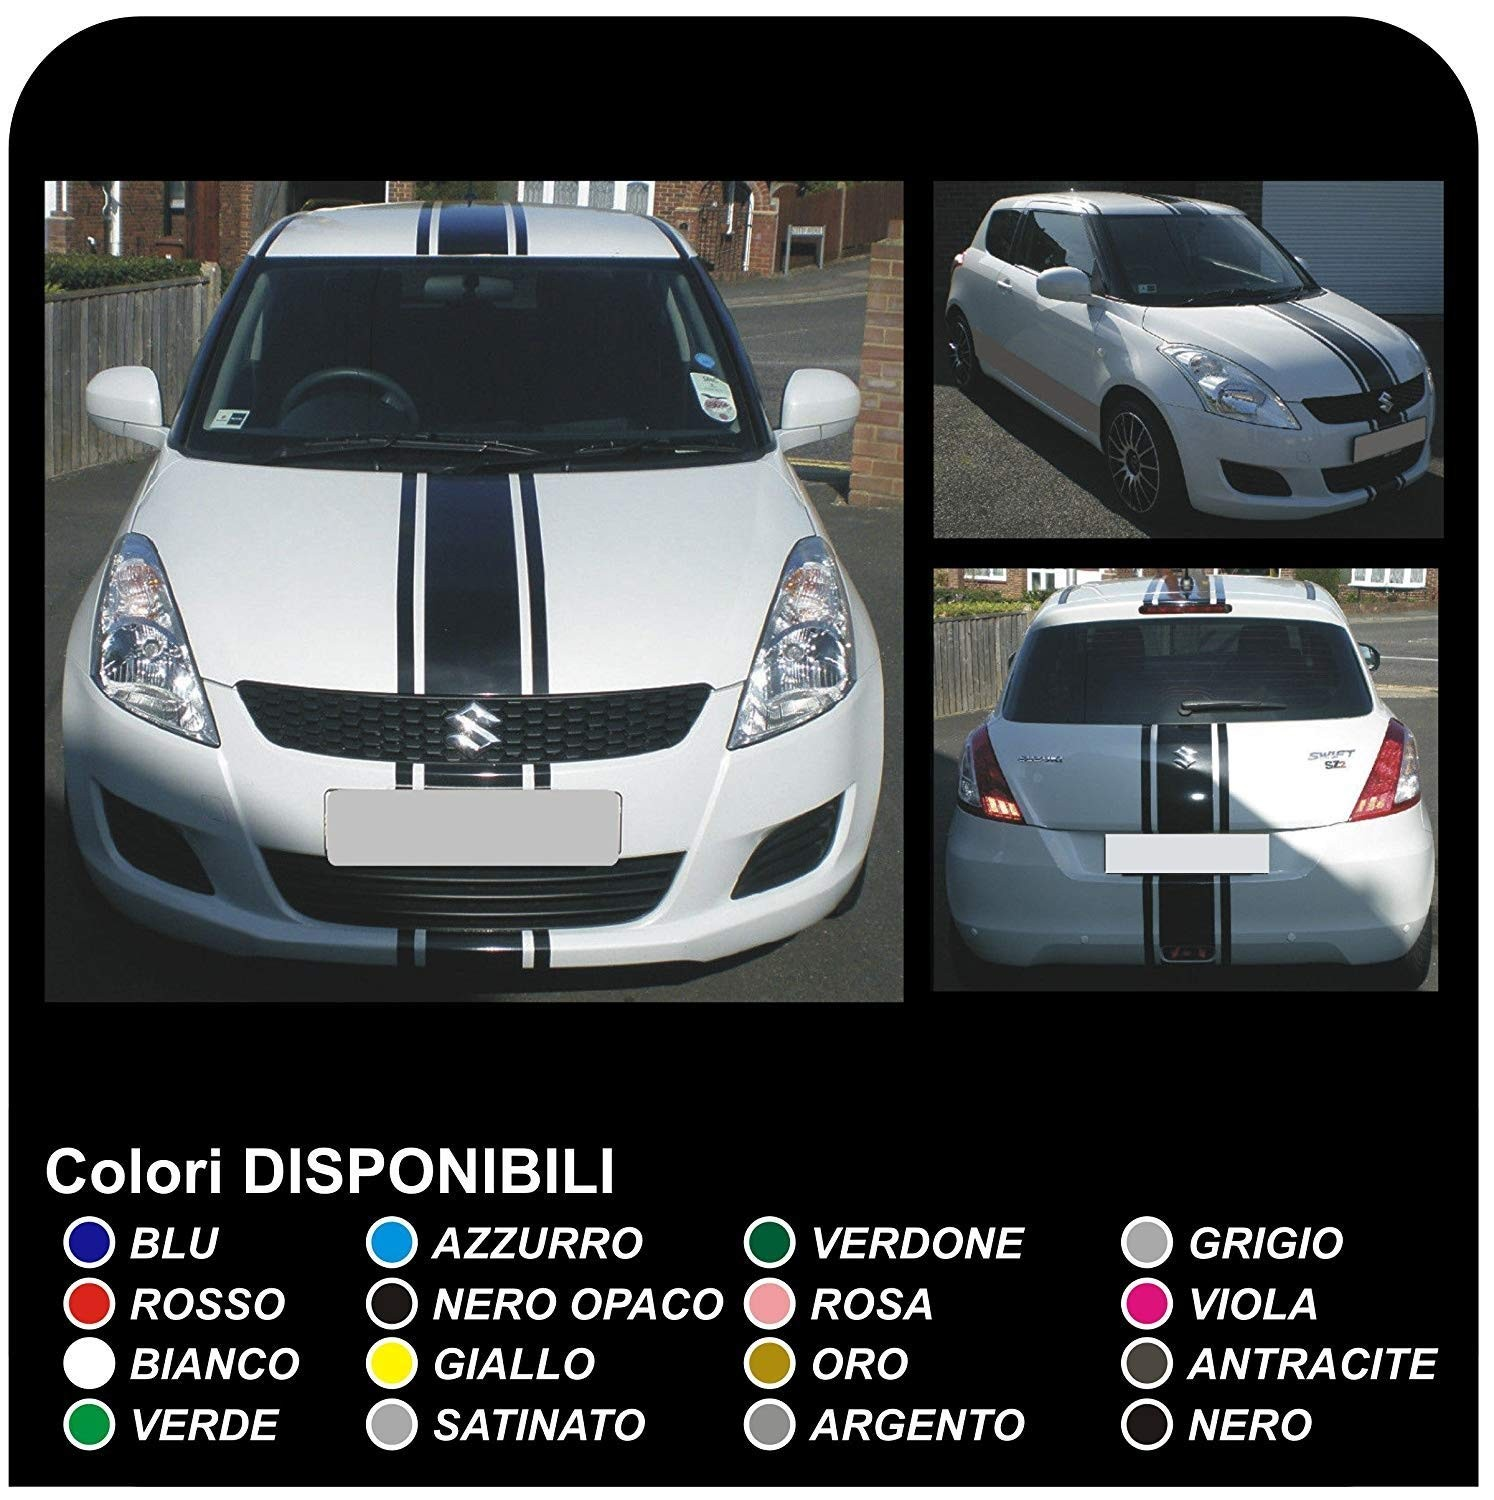 Adhesive hood roof and trunk for suzuki swift stripes decals 12 13 15 16 sport glx adhesive strips for suzuki swift jpg